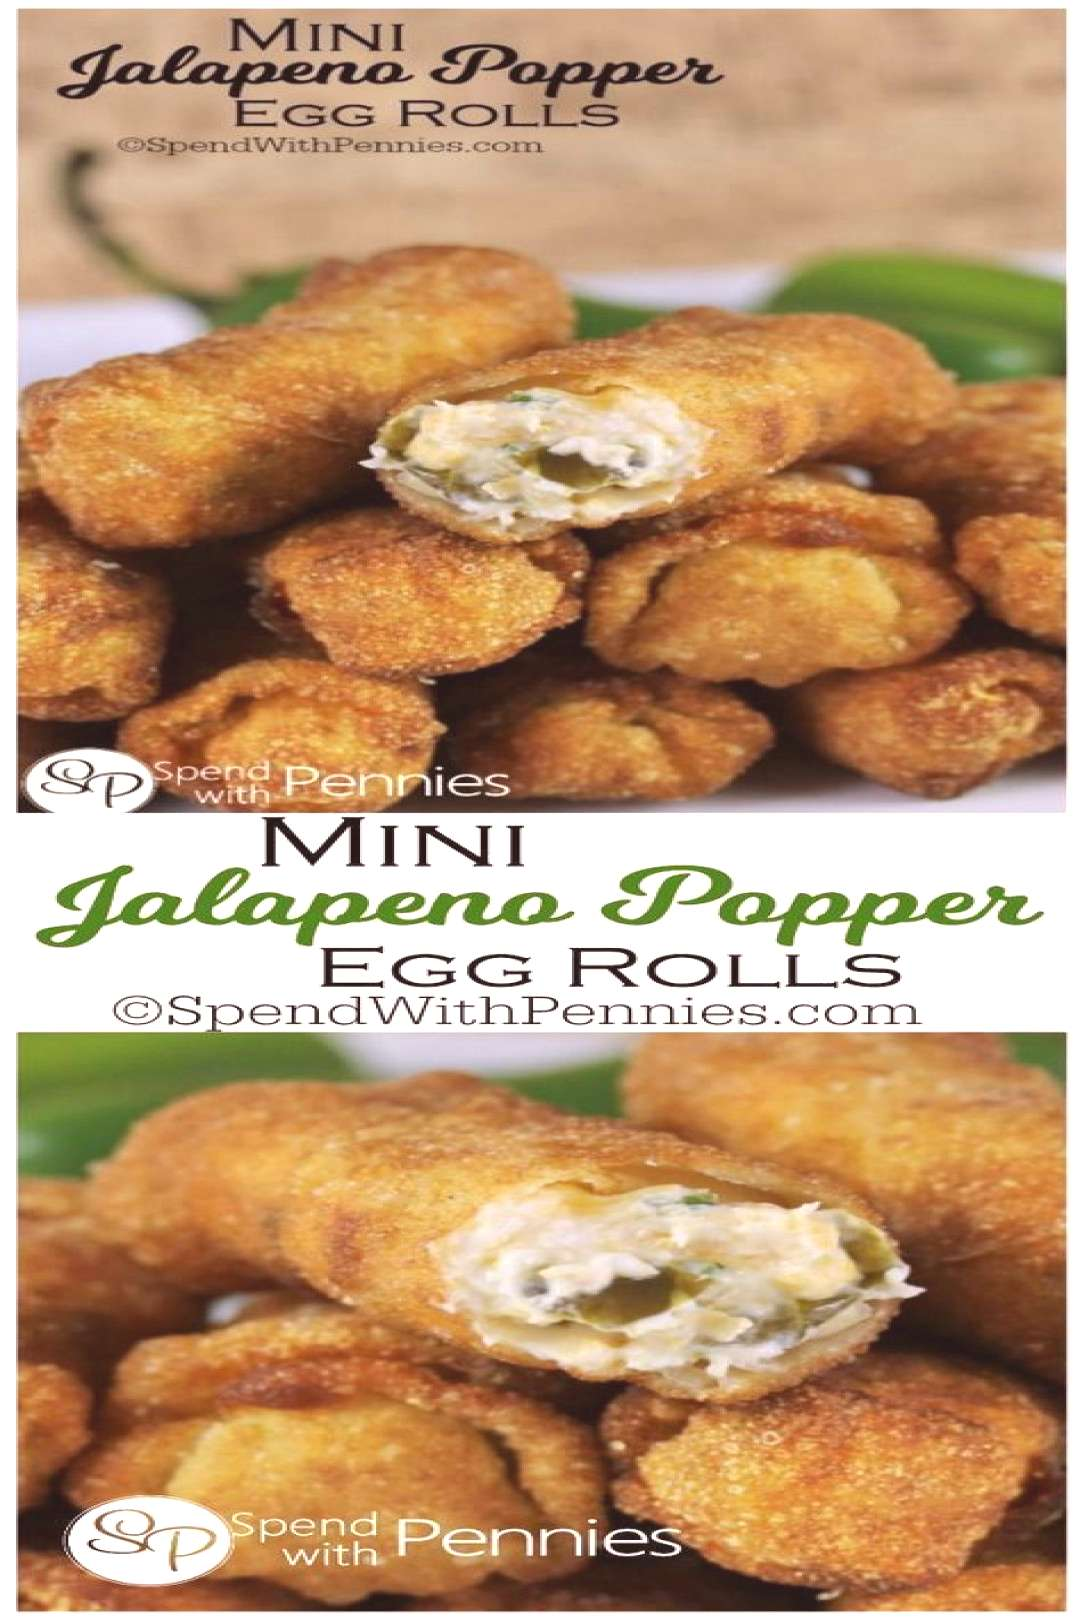 Mini Jalapeno Popper Egg Rolls - Spend With Pennies - Tailgate food -